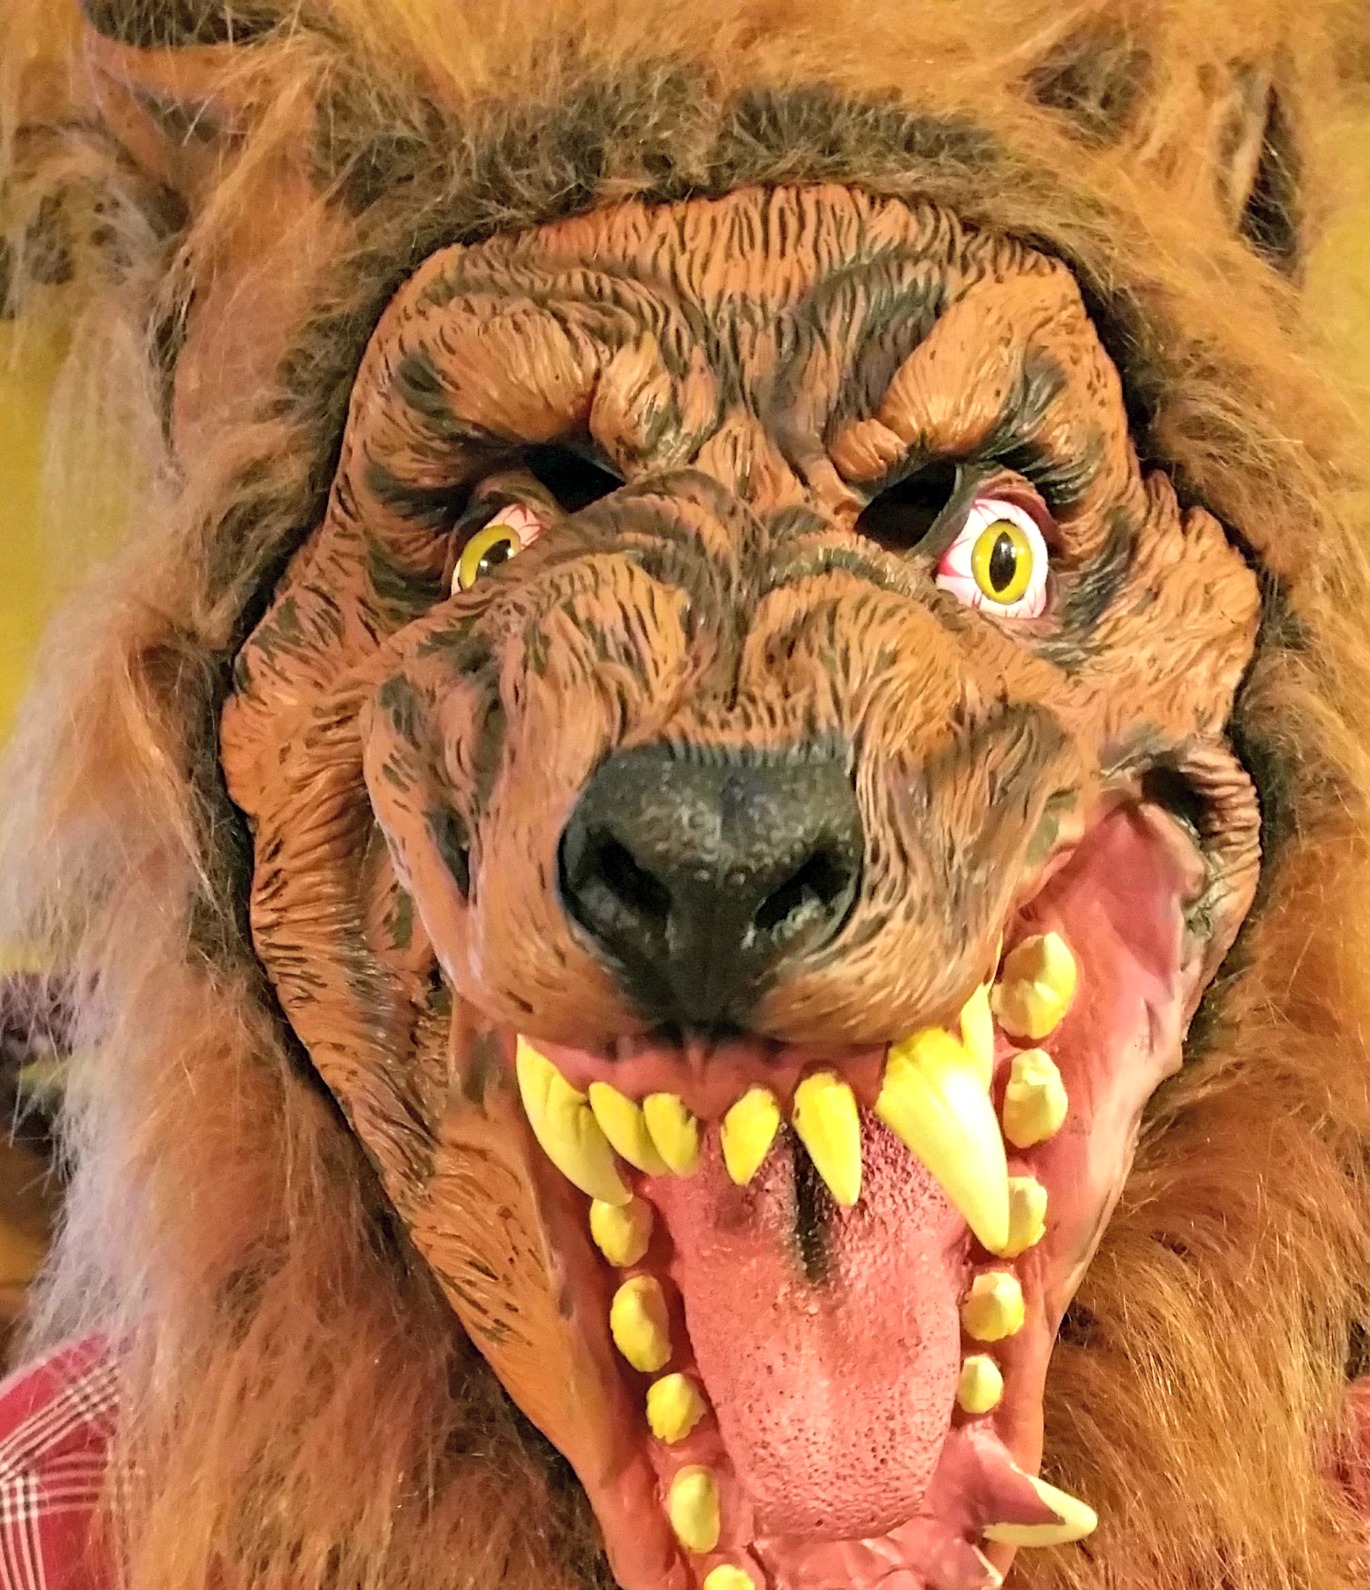 Easy diy werewolf costume redo it yourself inspirations easy diy luckily there was a werewolf mask he liked he had one in his closet already but this one was way more scarier and cooler solutioingenieria Choice Image